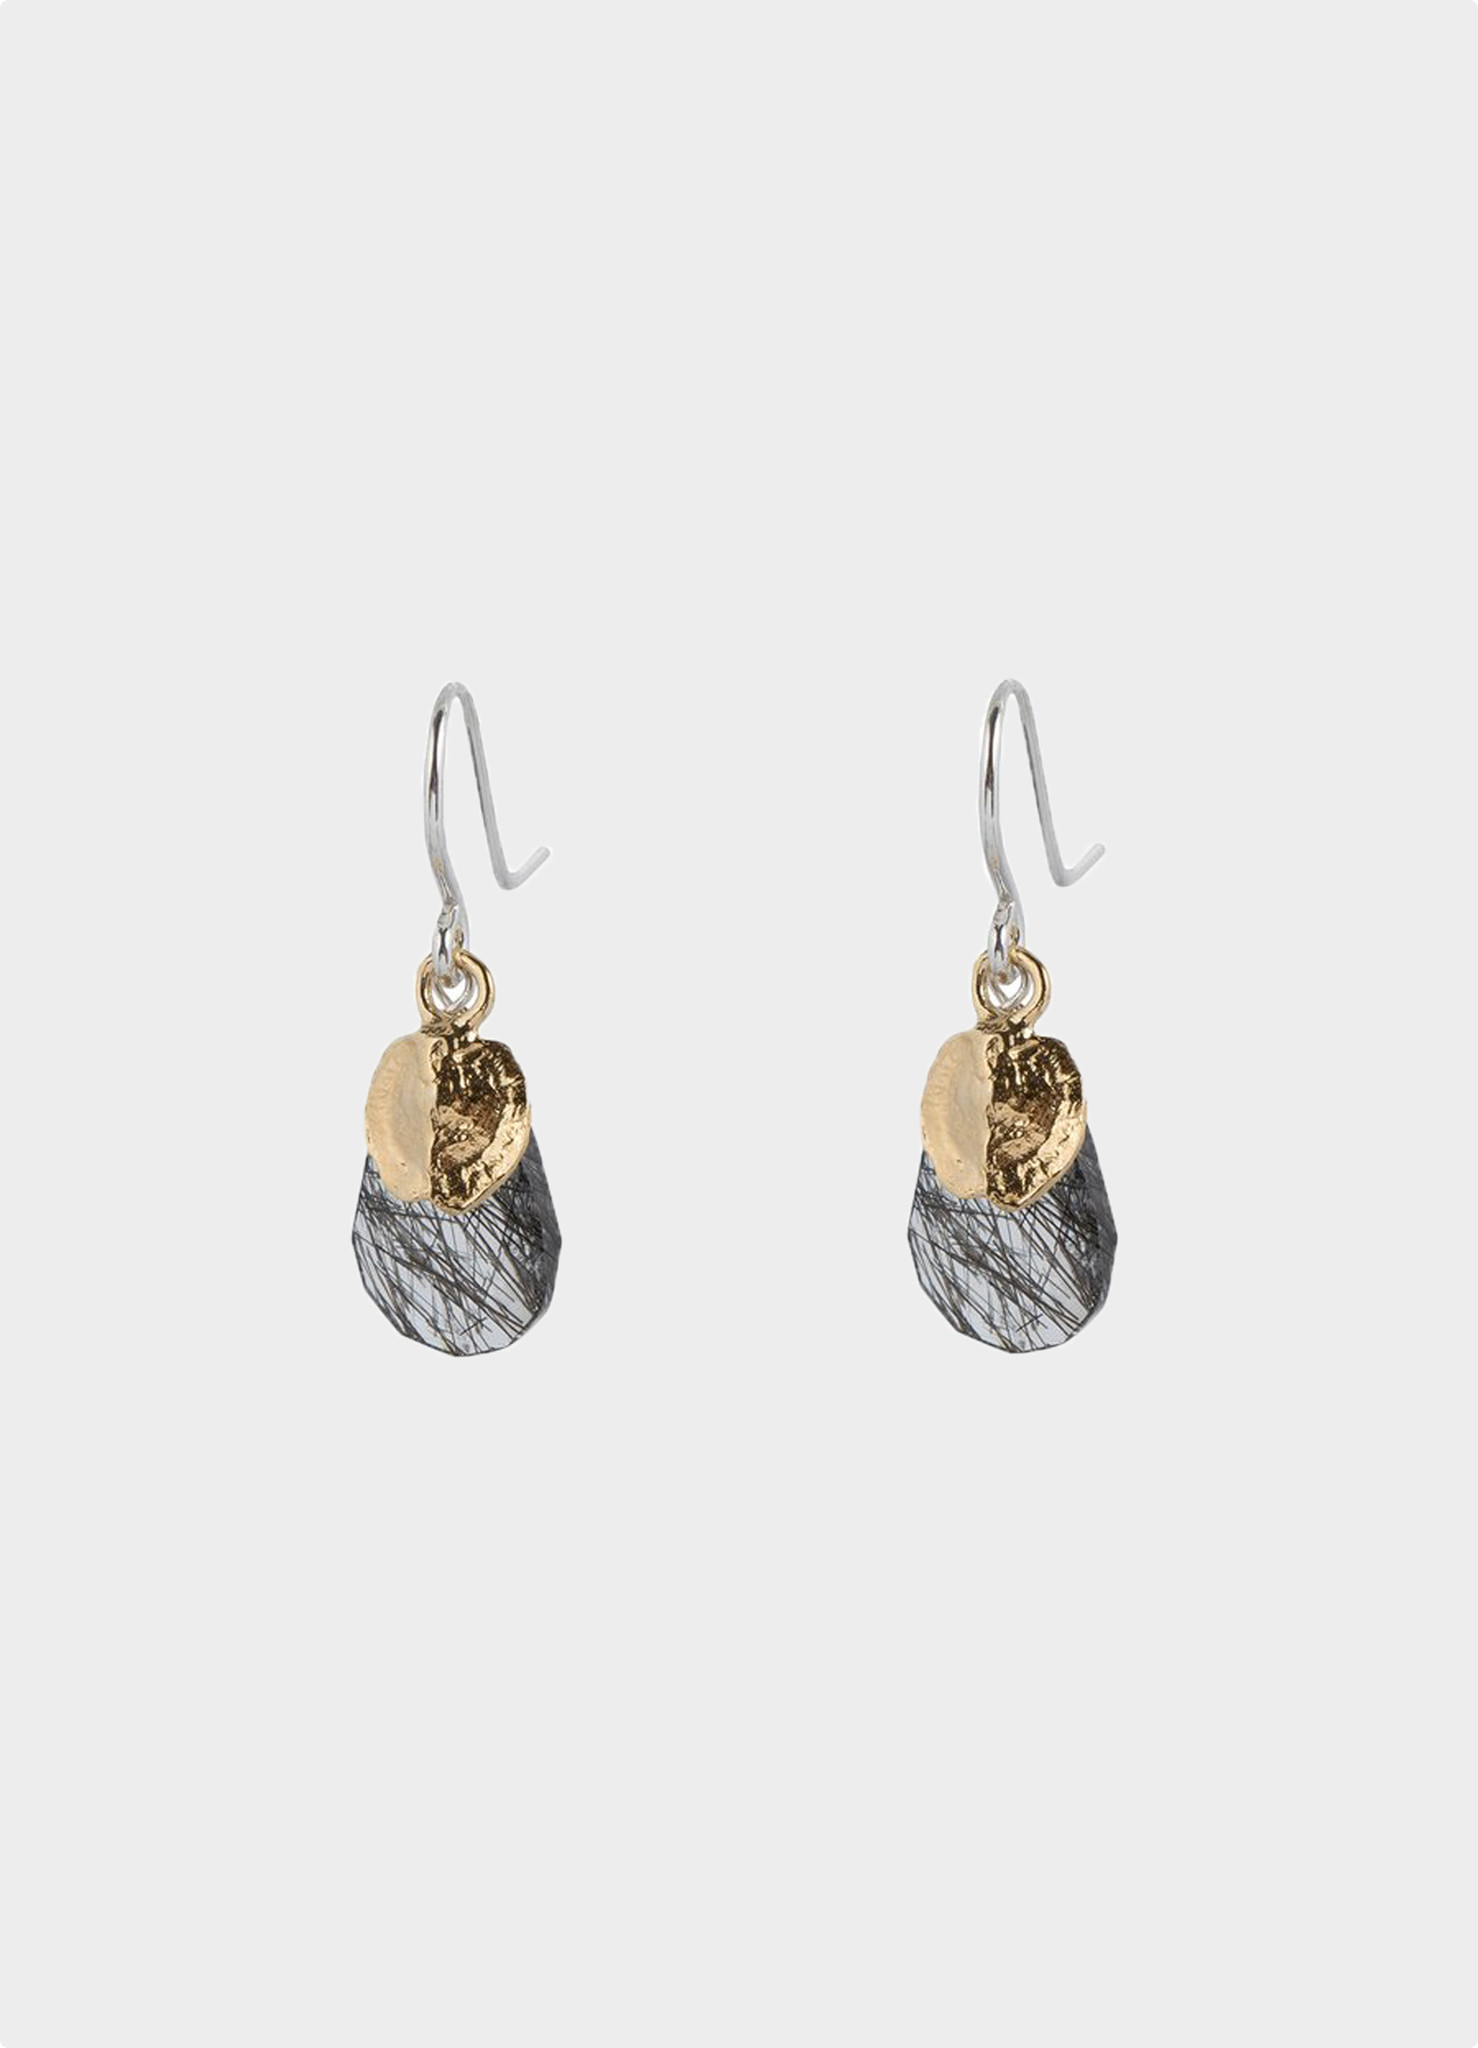 Subtle Hook Earrings with Tourmaline Quartz  silver gold plated